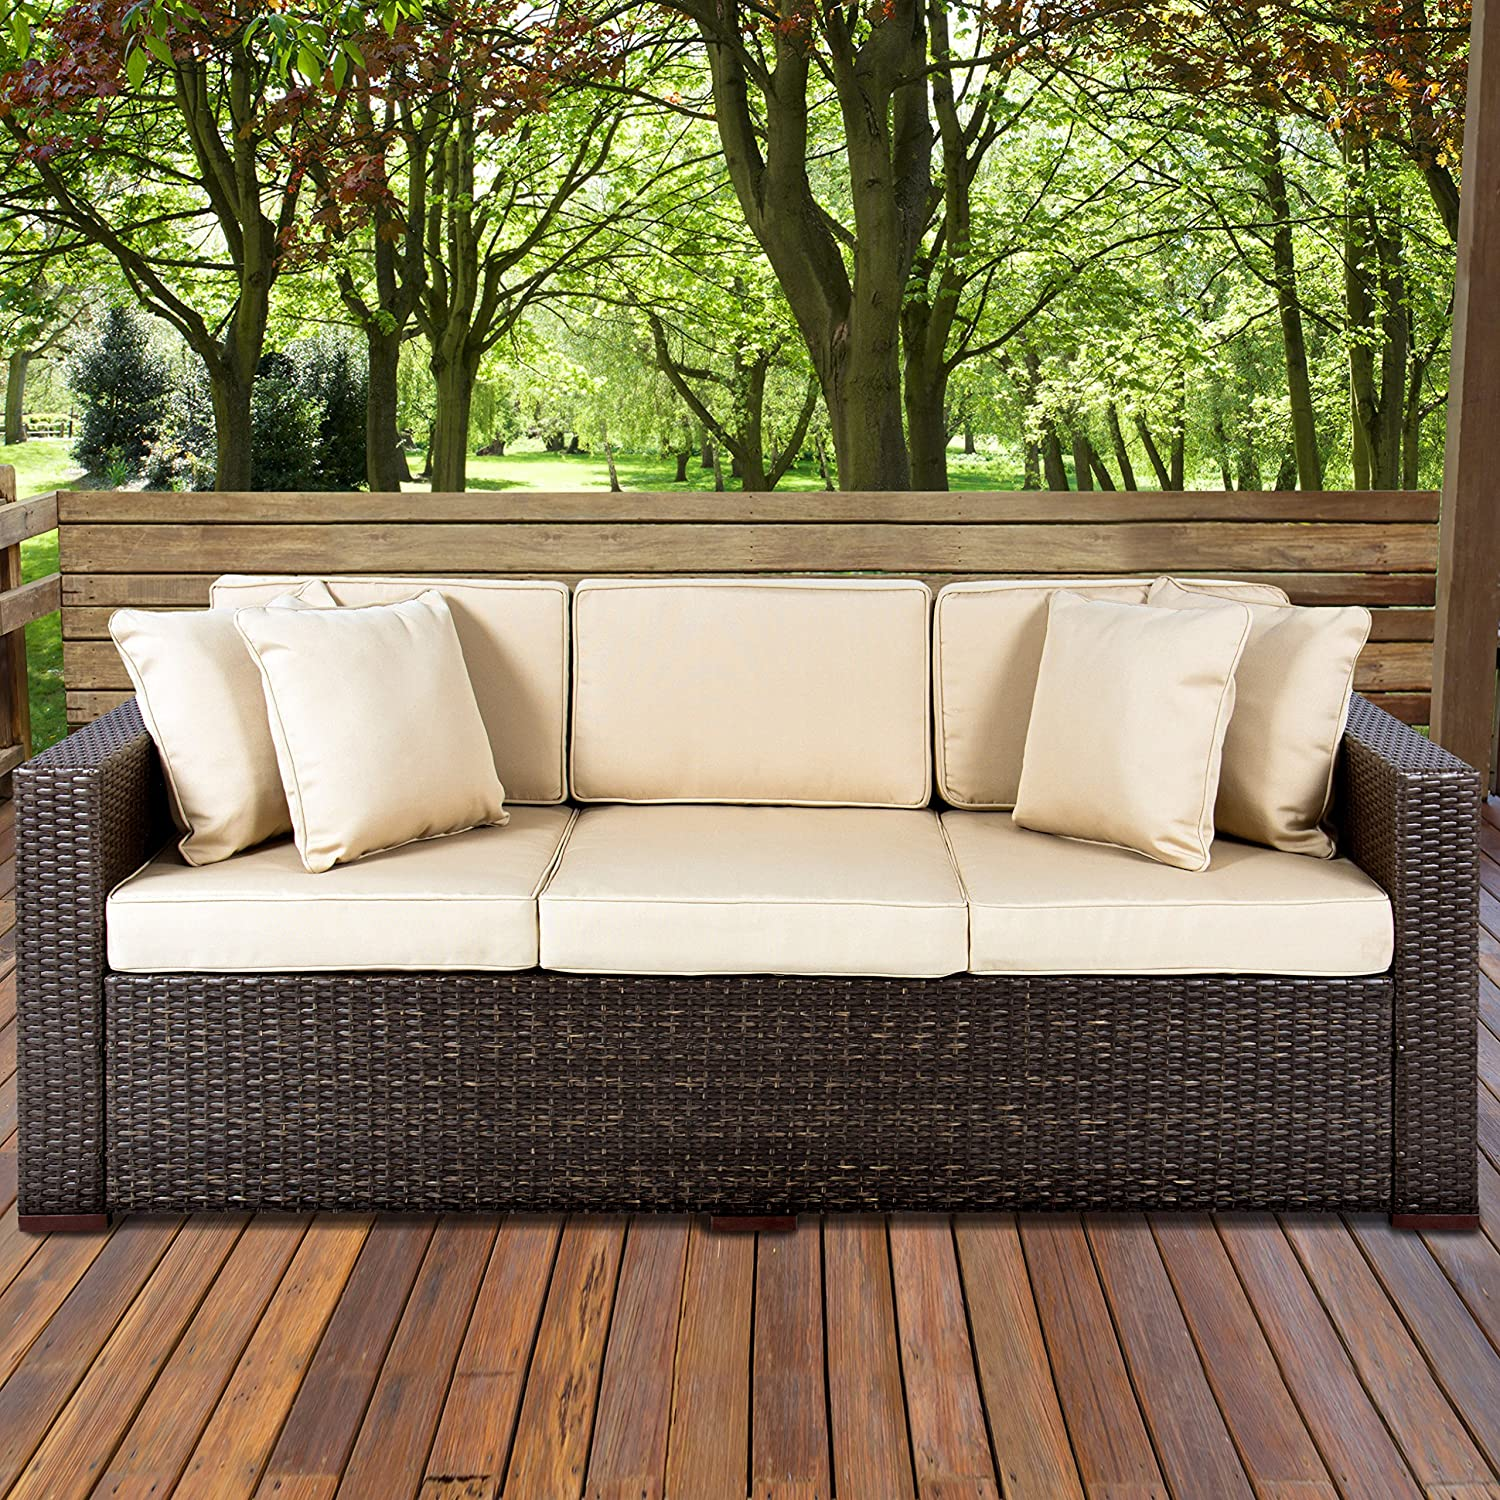 outdoor furniture wicker com piece walmart patio conversation cosco ip resin jamaica set